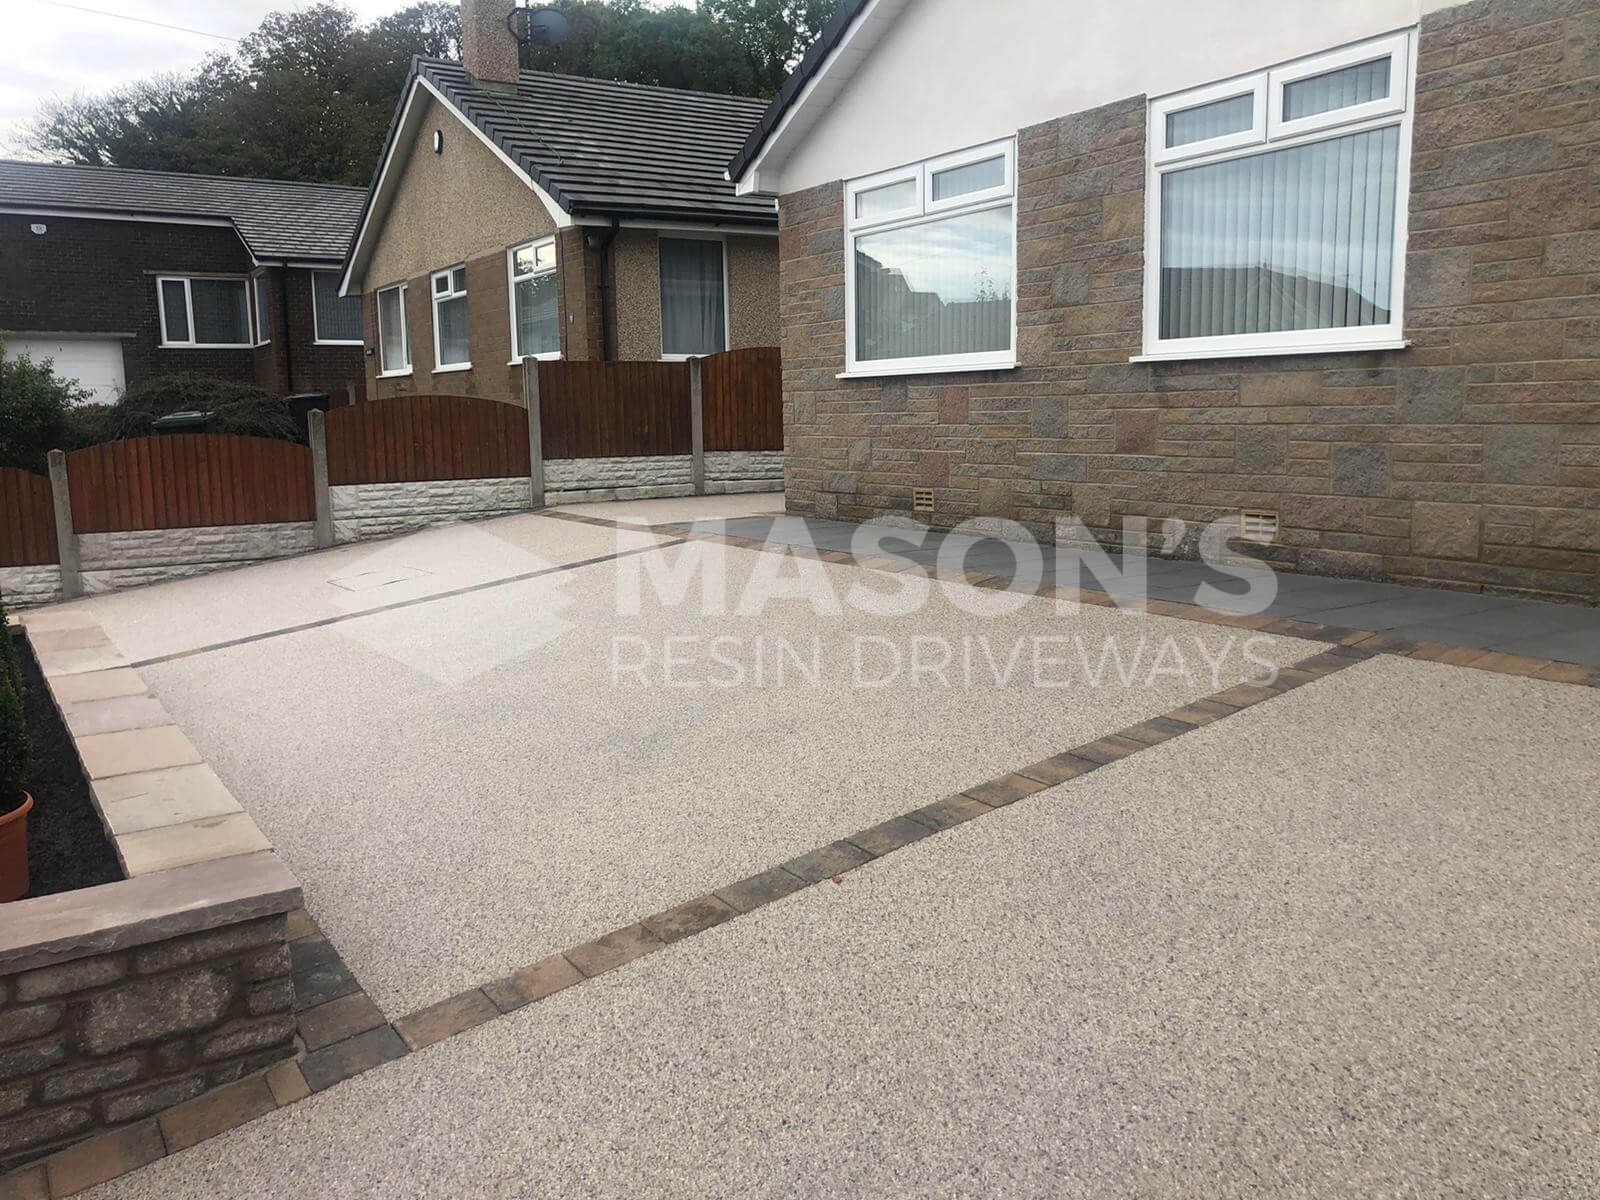 Slanted Pearl Quartz Resin Bound Driveway in Preston, Lancashire